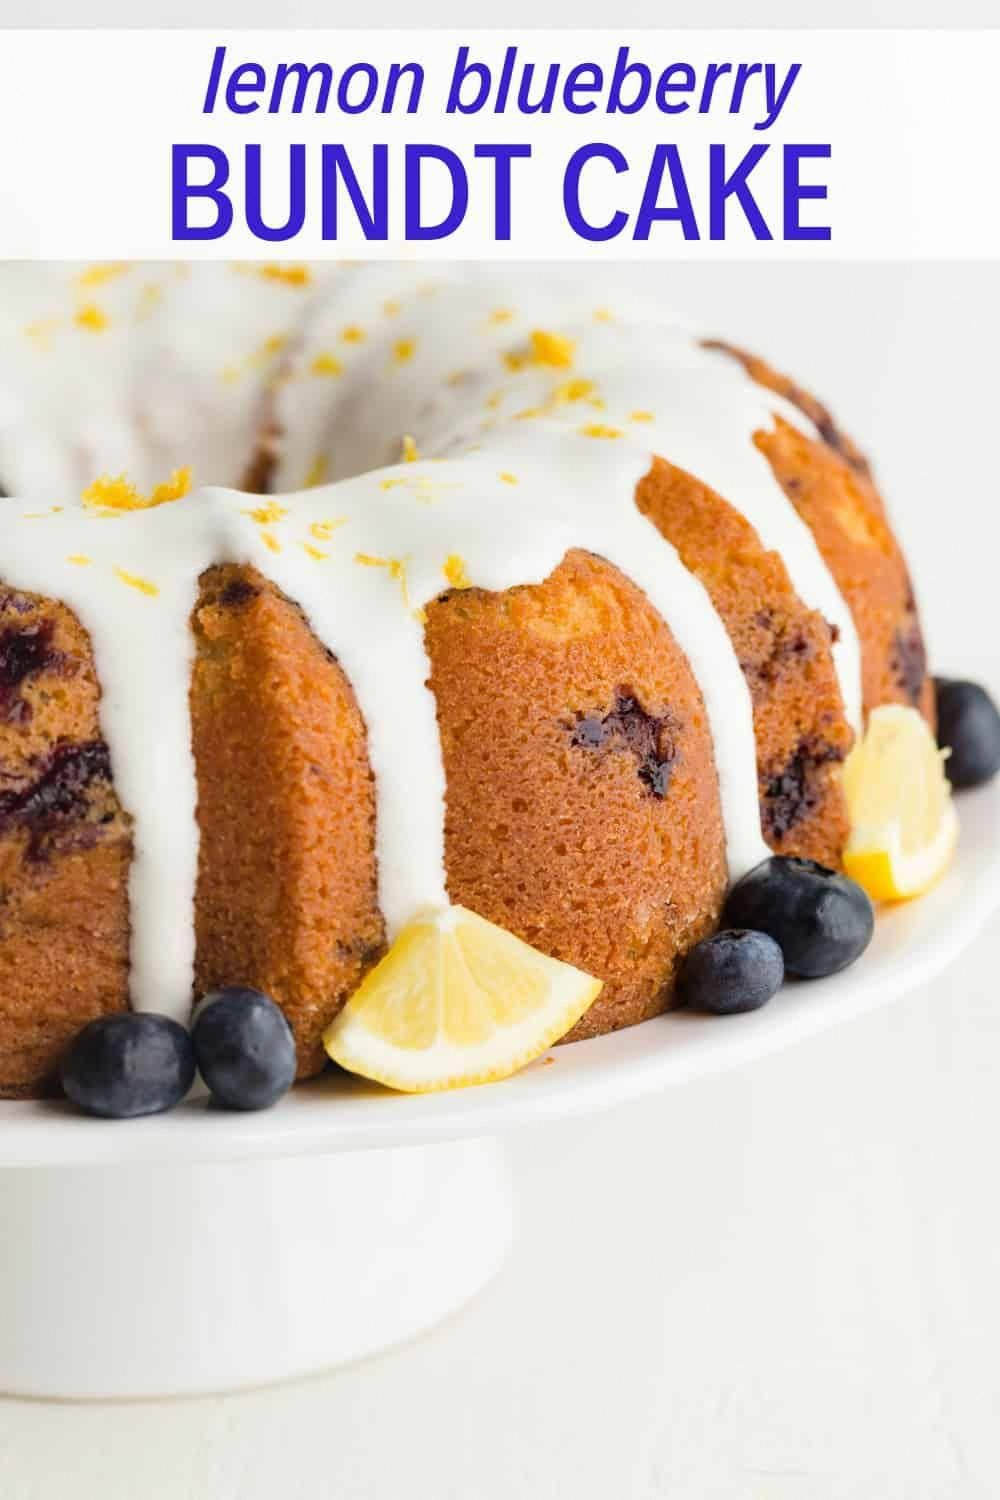 A classic lemon bundt cake speckled with fresh blueberries and topped with lemon cream cheese glaze